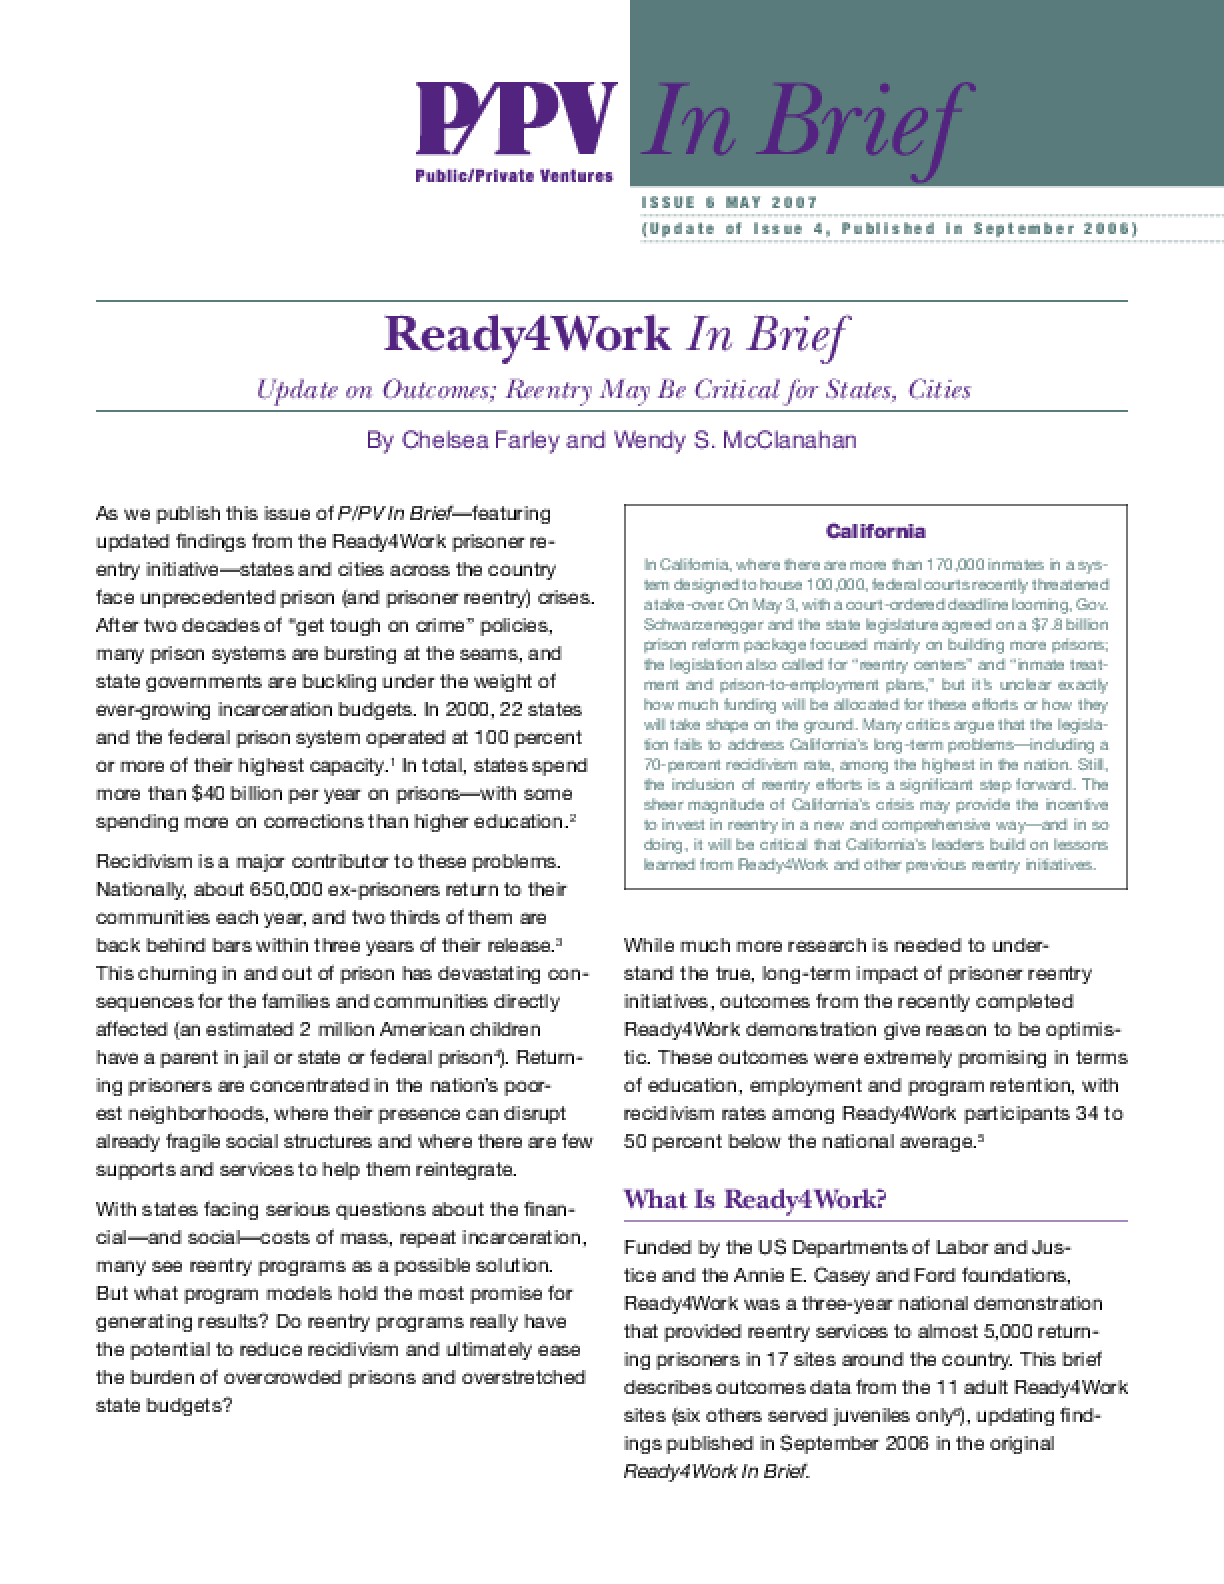 Ready4Work In Brief: Update on Outcomes; Reentry May Be Critical for States, Cities